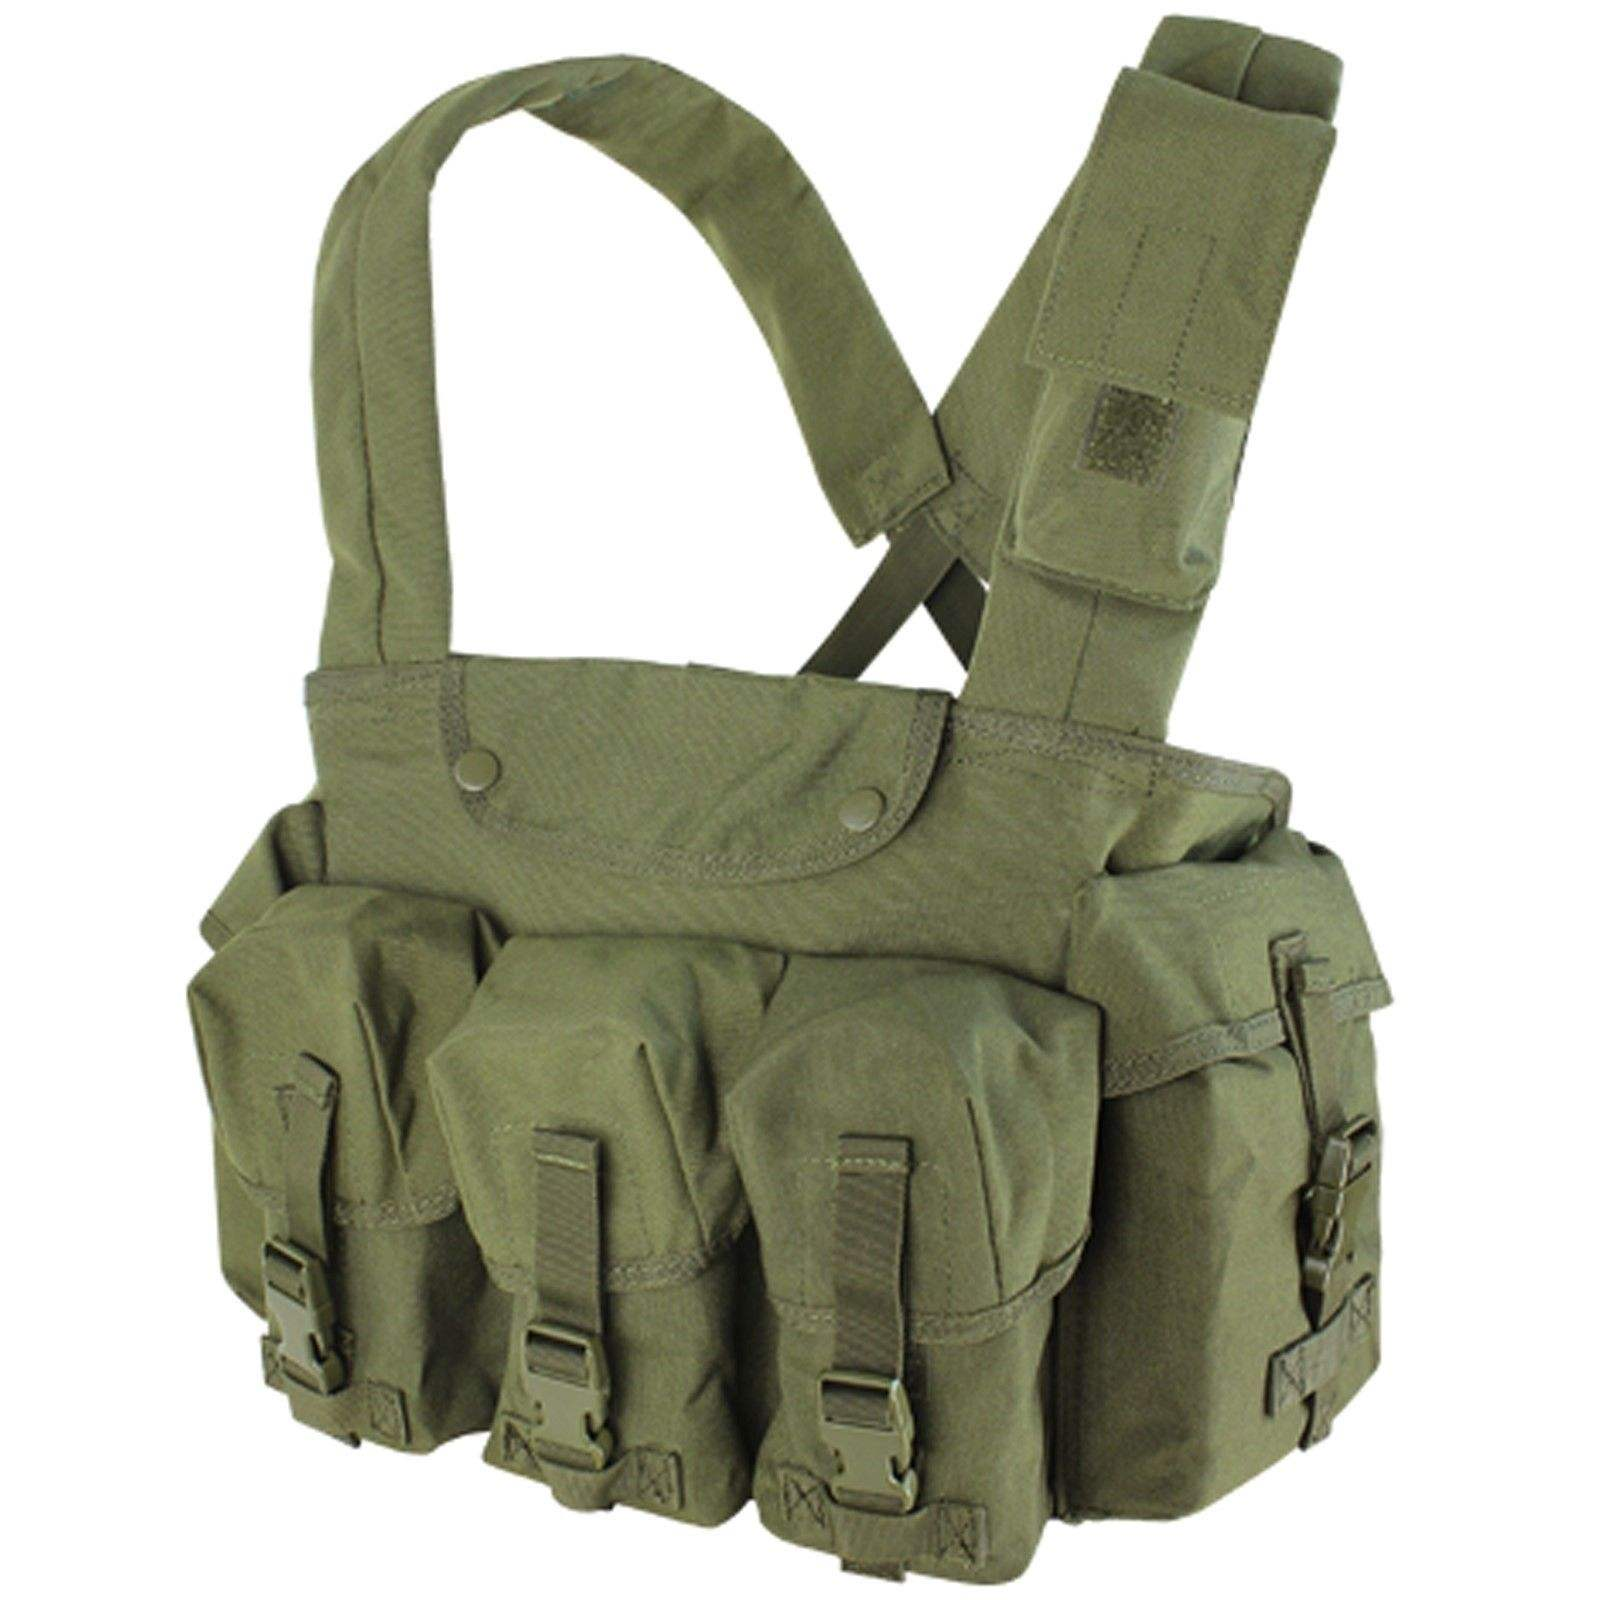 NcStar CVAKCR2921 WOODLAND Tactical Chest Rig w/3 Double Magazine Pouches